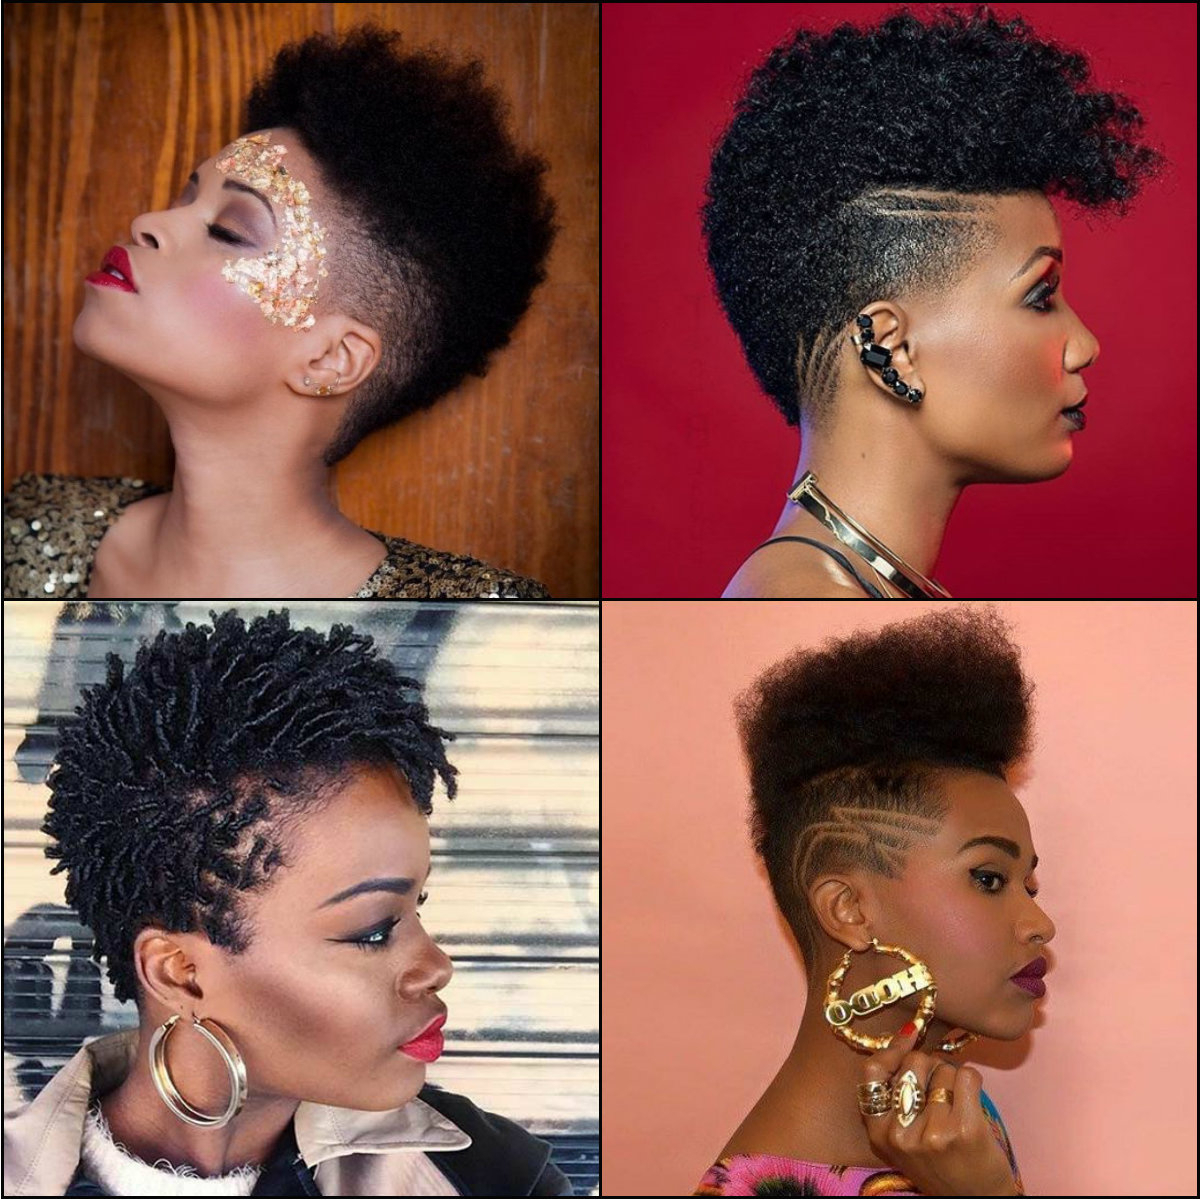 Black Women Fade Haircuts To Look Edgy And Sexy (View 3 of 20)